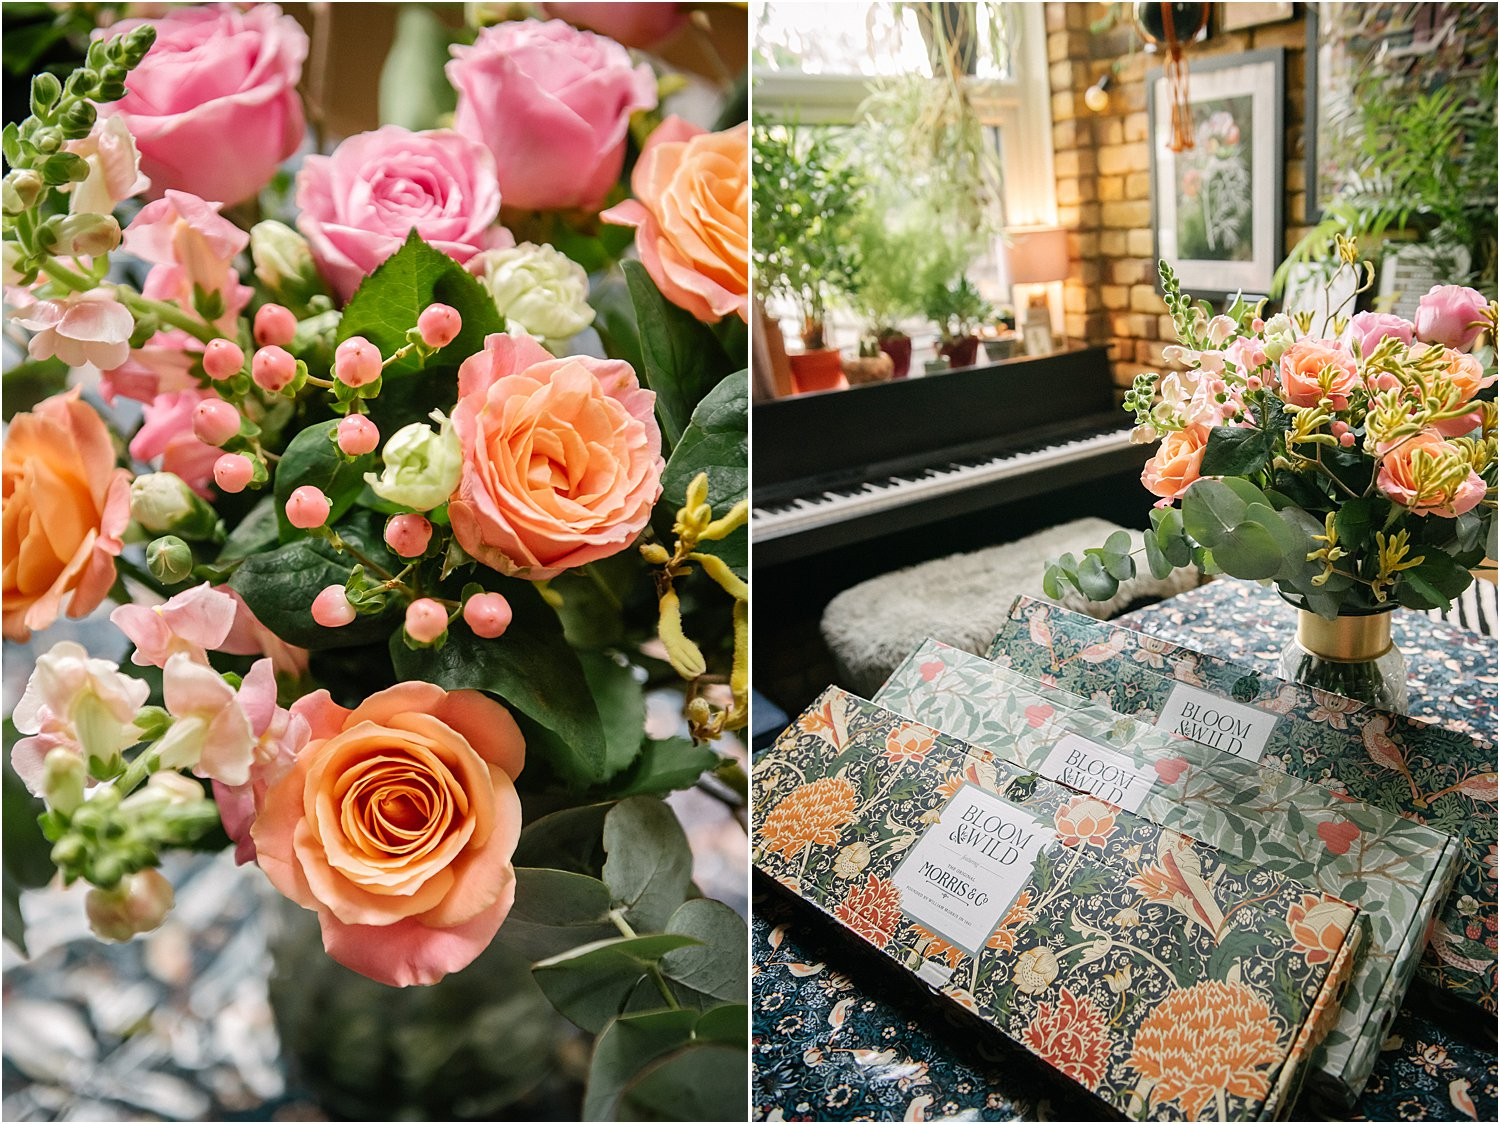 3-ways-elevate-interior-design-with-florals-bloom-and-wild-lily-sawyer